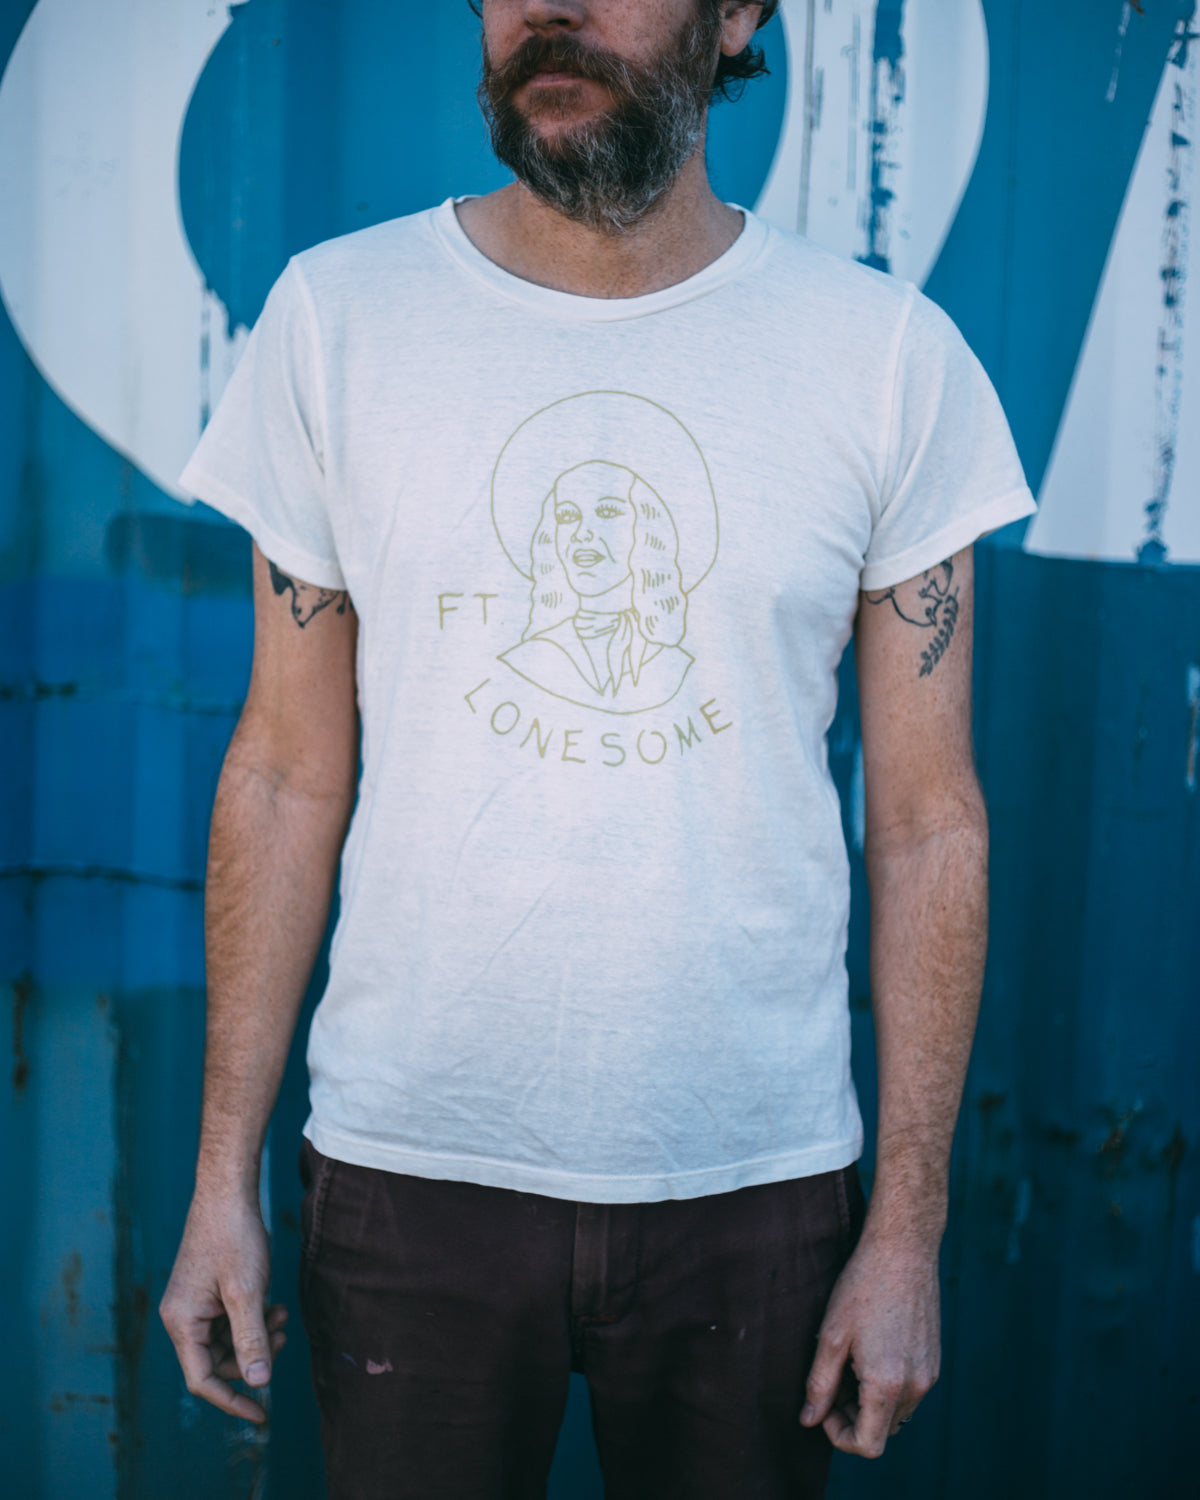 Jungmaven + Ft Lonesome Hemp-Blend T-Shirt